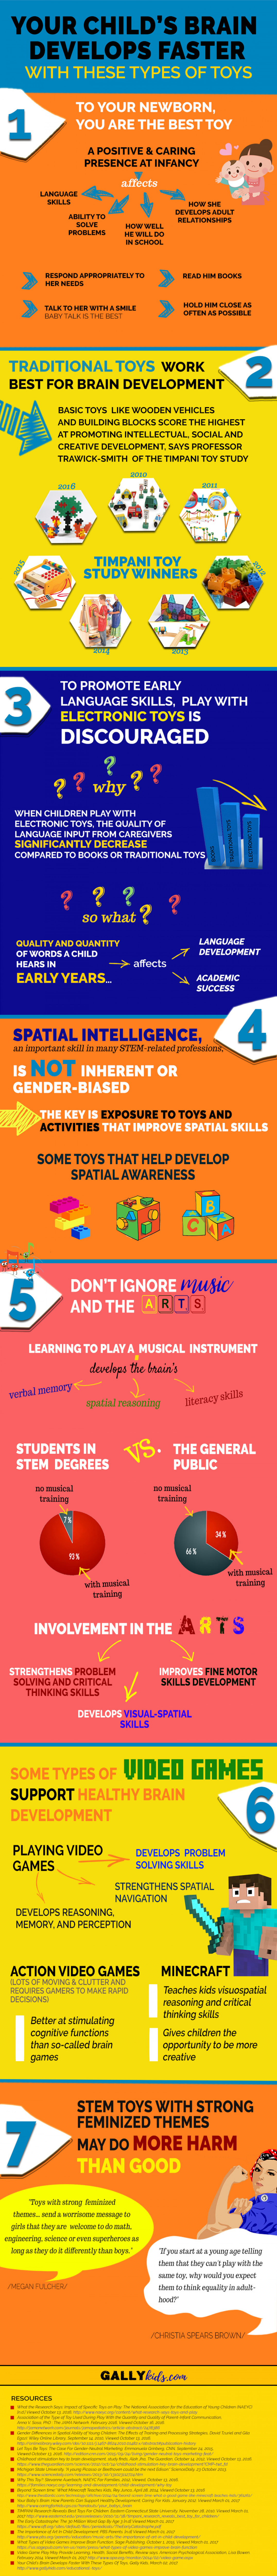 These Are The Best Educational Toys For Kids That Accelerate Brain Development According to Science Infographic